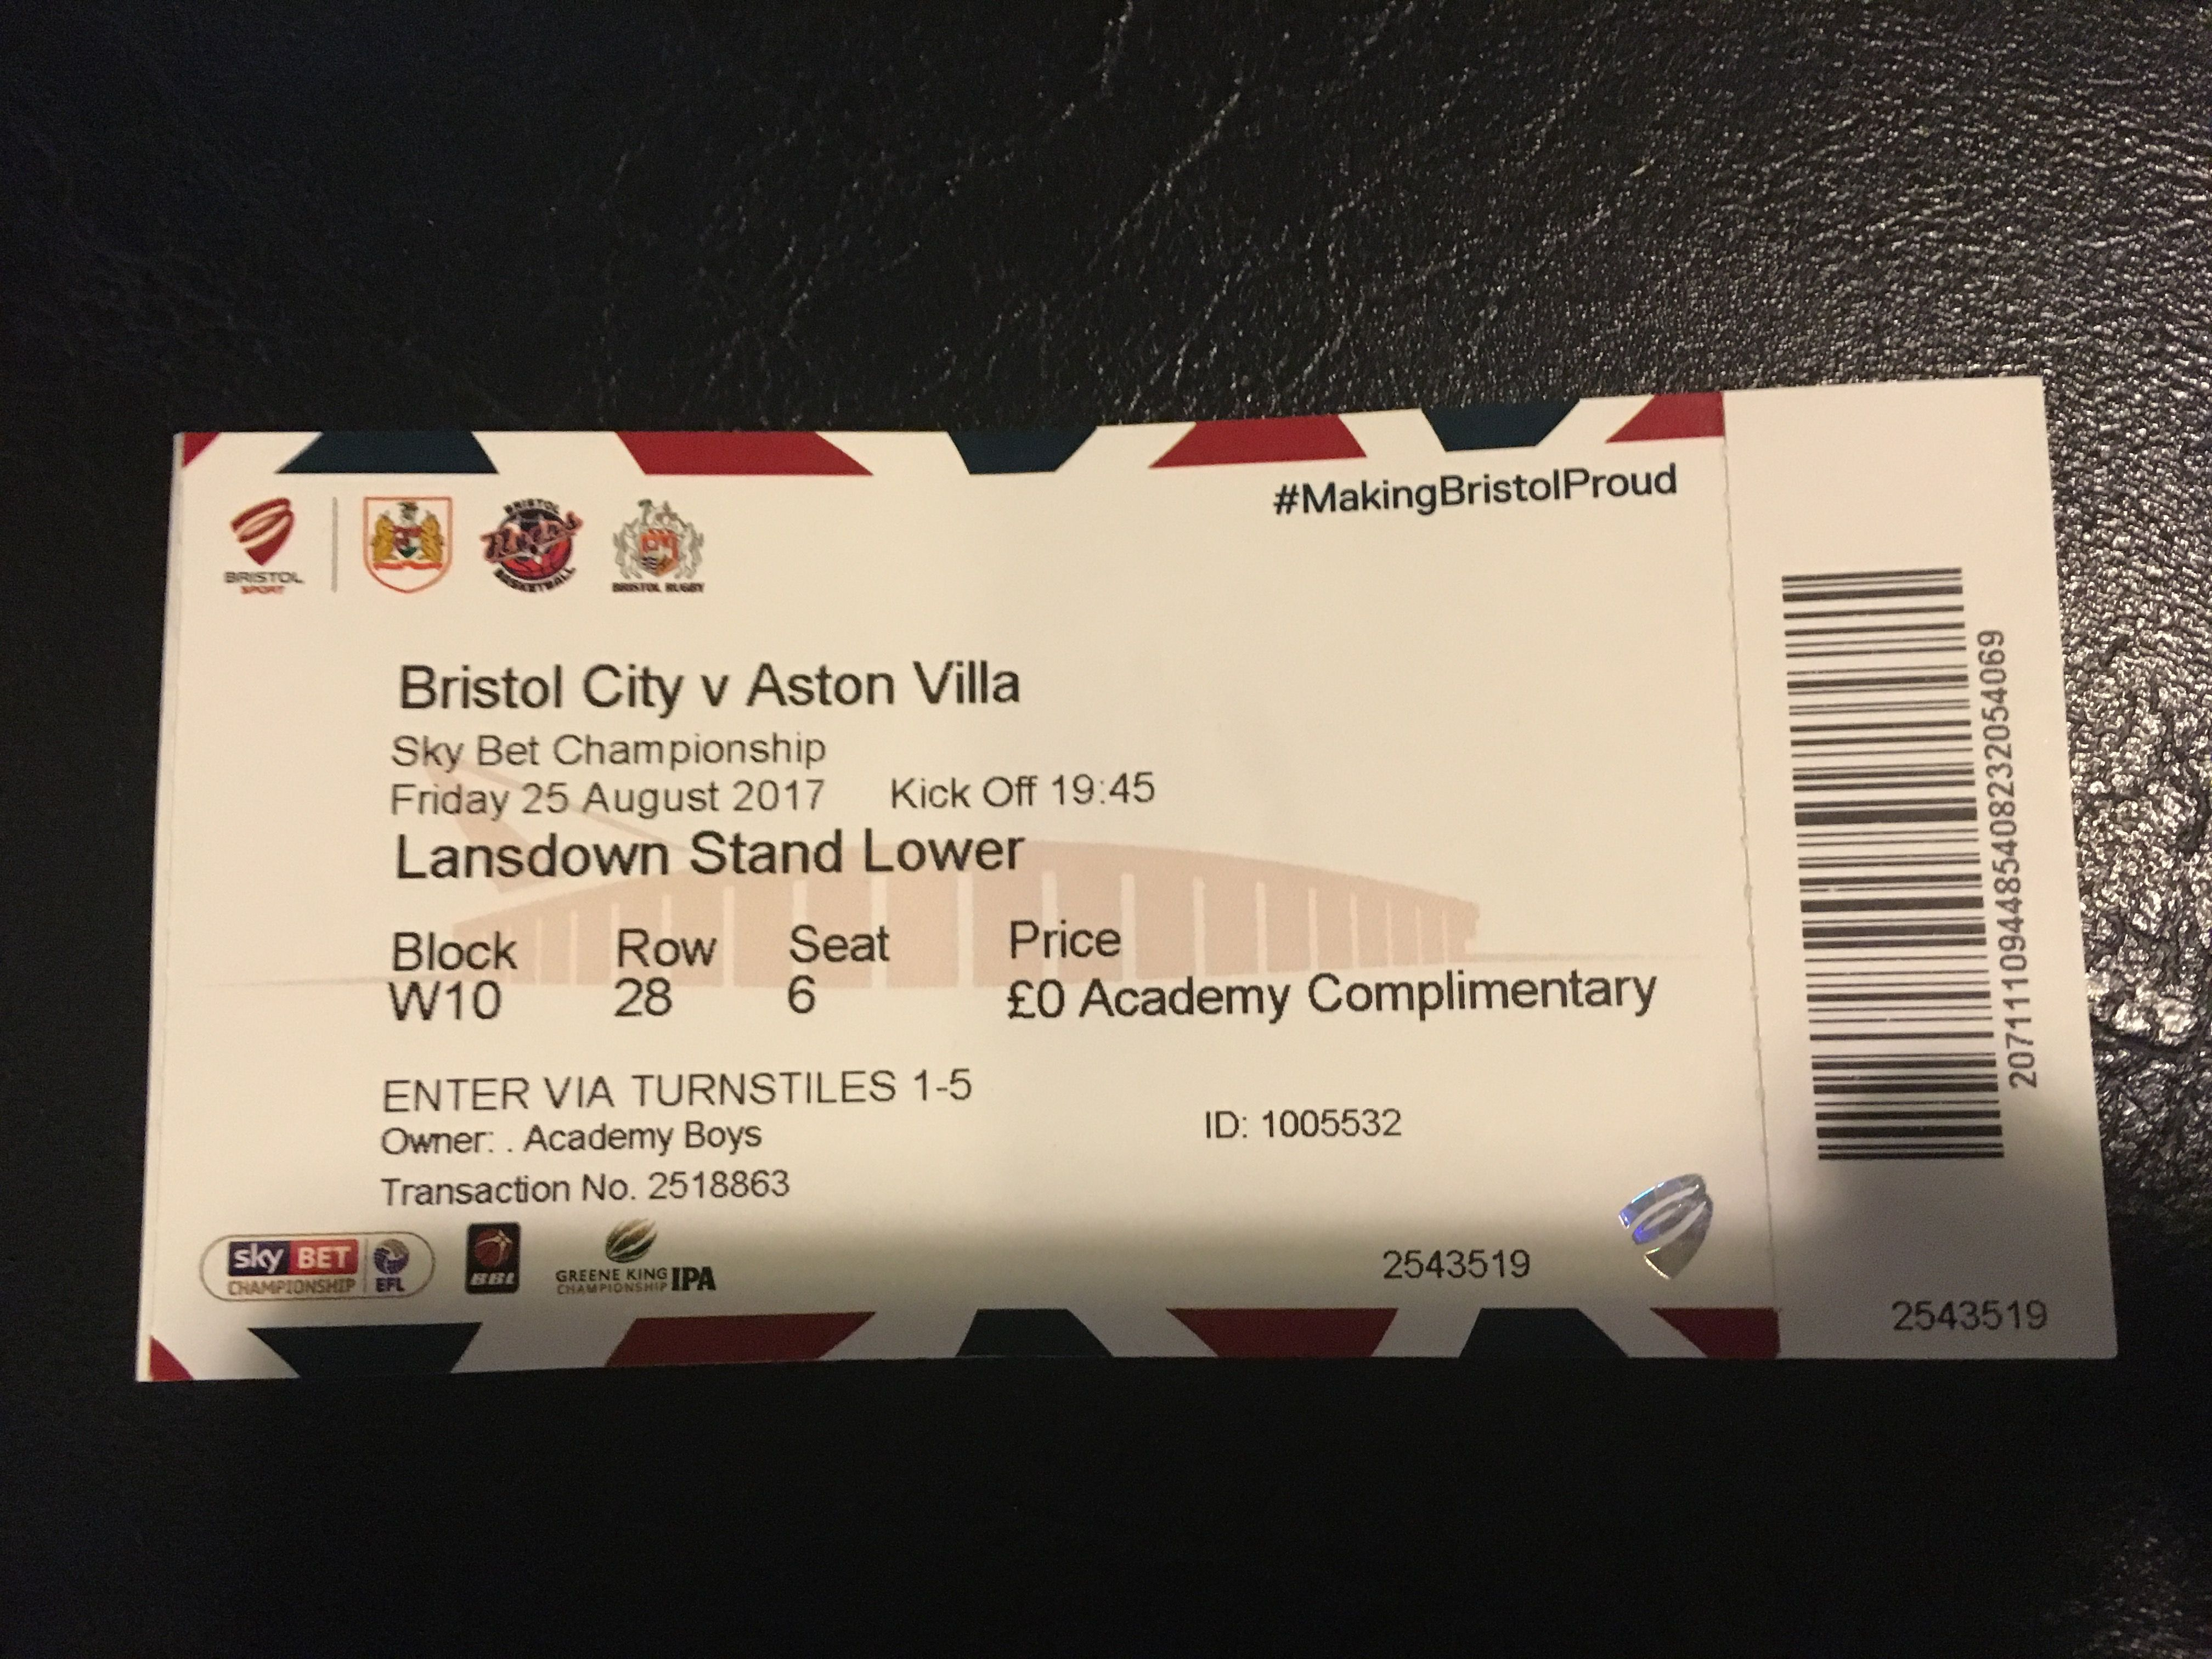 Bristol City v Aston Villa 25-08-17 Ticket